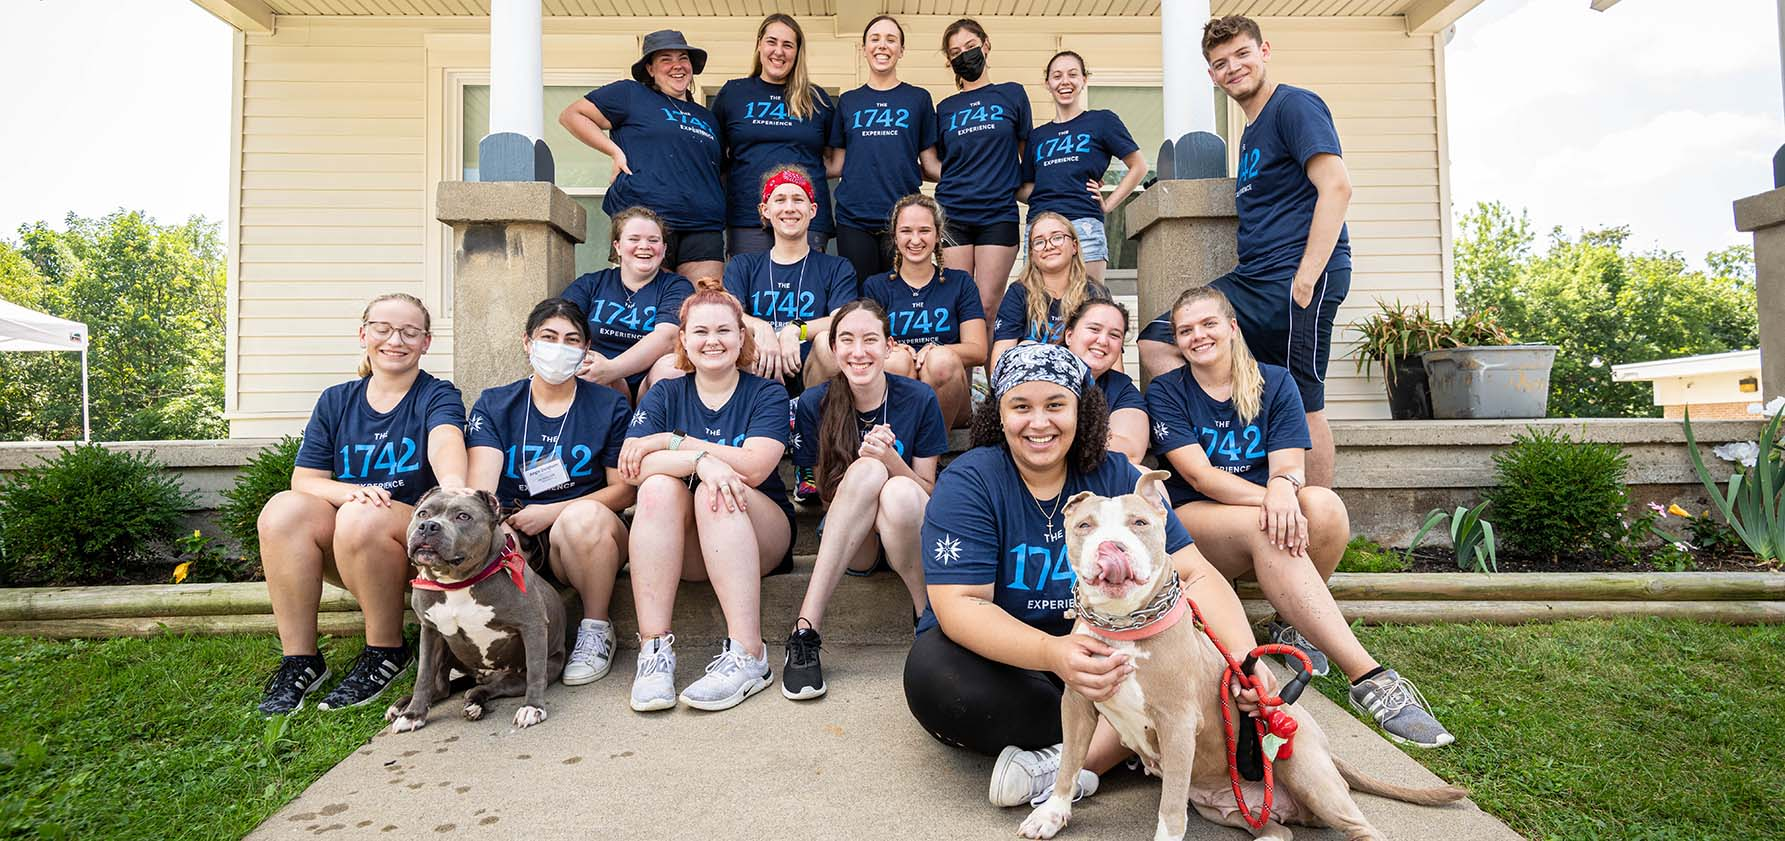 Students who participated in the 1742 Experience in August of 2021 seated together on the steps outside the Humane Society of Lehigh County.